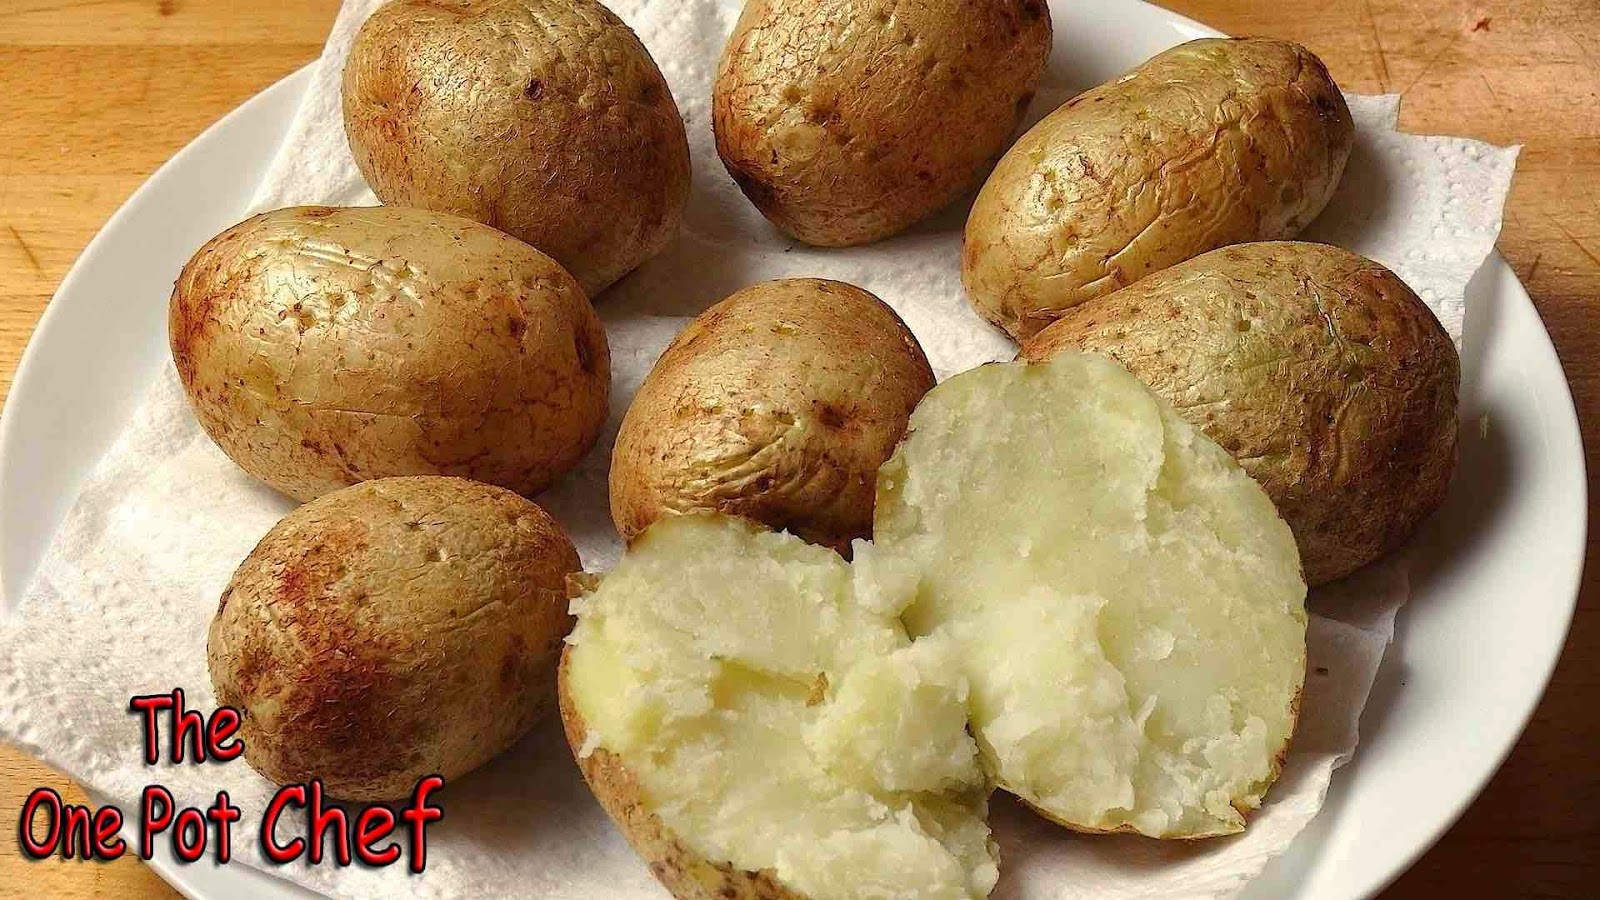 How To Make A Baked Potato In Microwave  The e Pot Chef Show Quick Tips Microwave Baked Potatoes